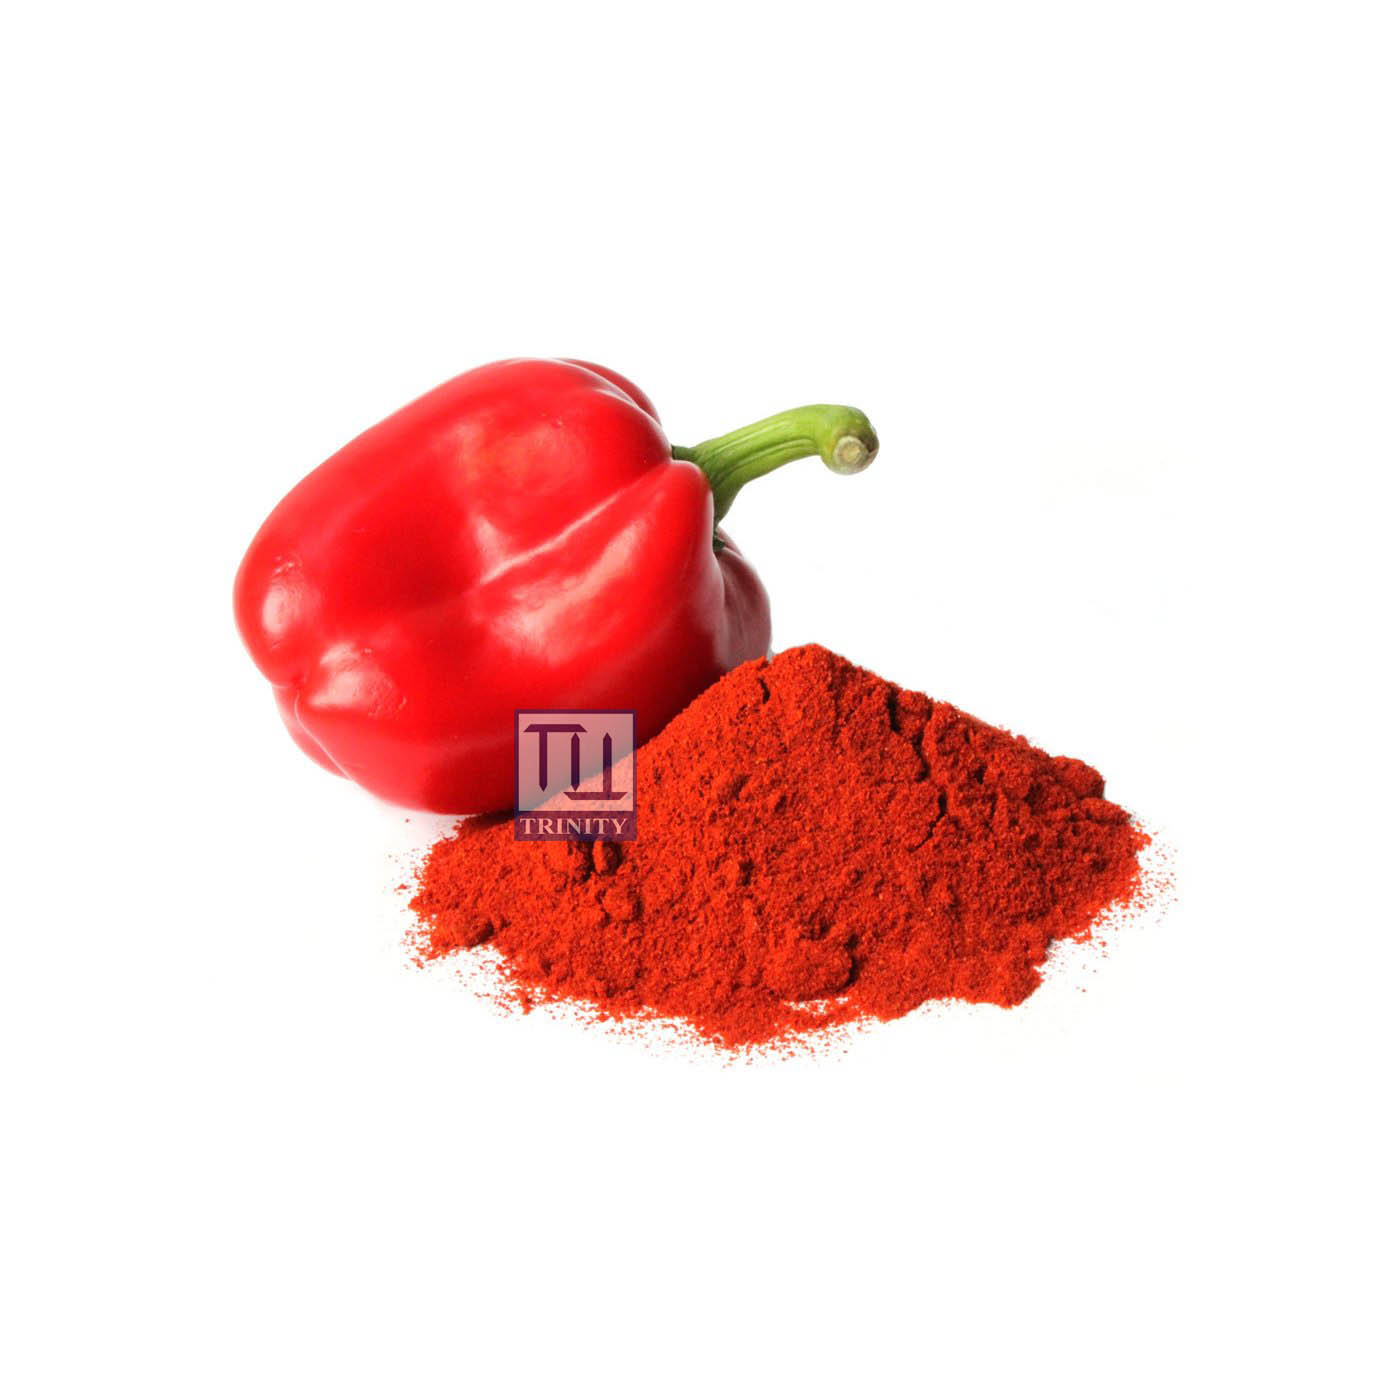 Paprika Powder  匈牙利辣椒粉